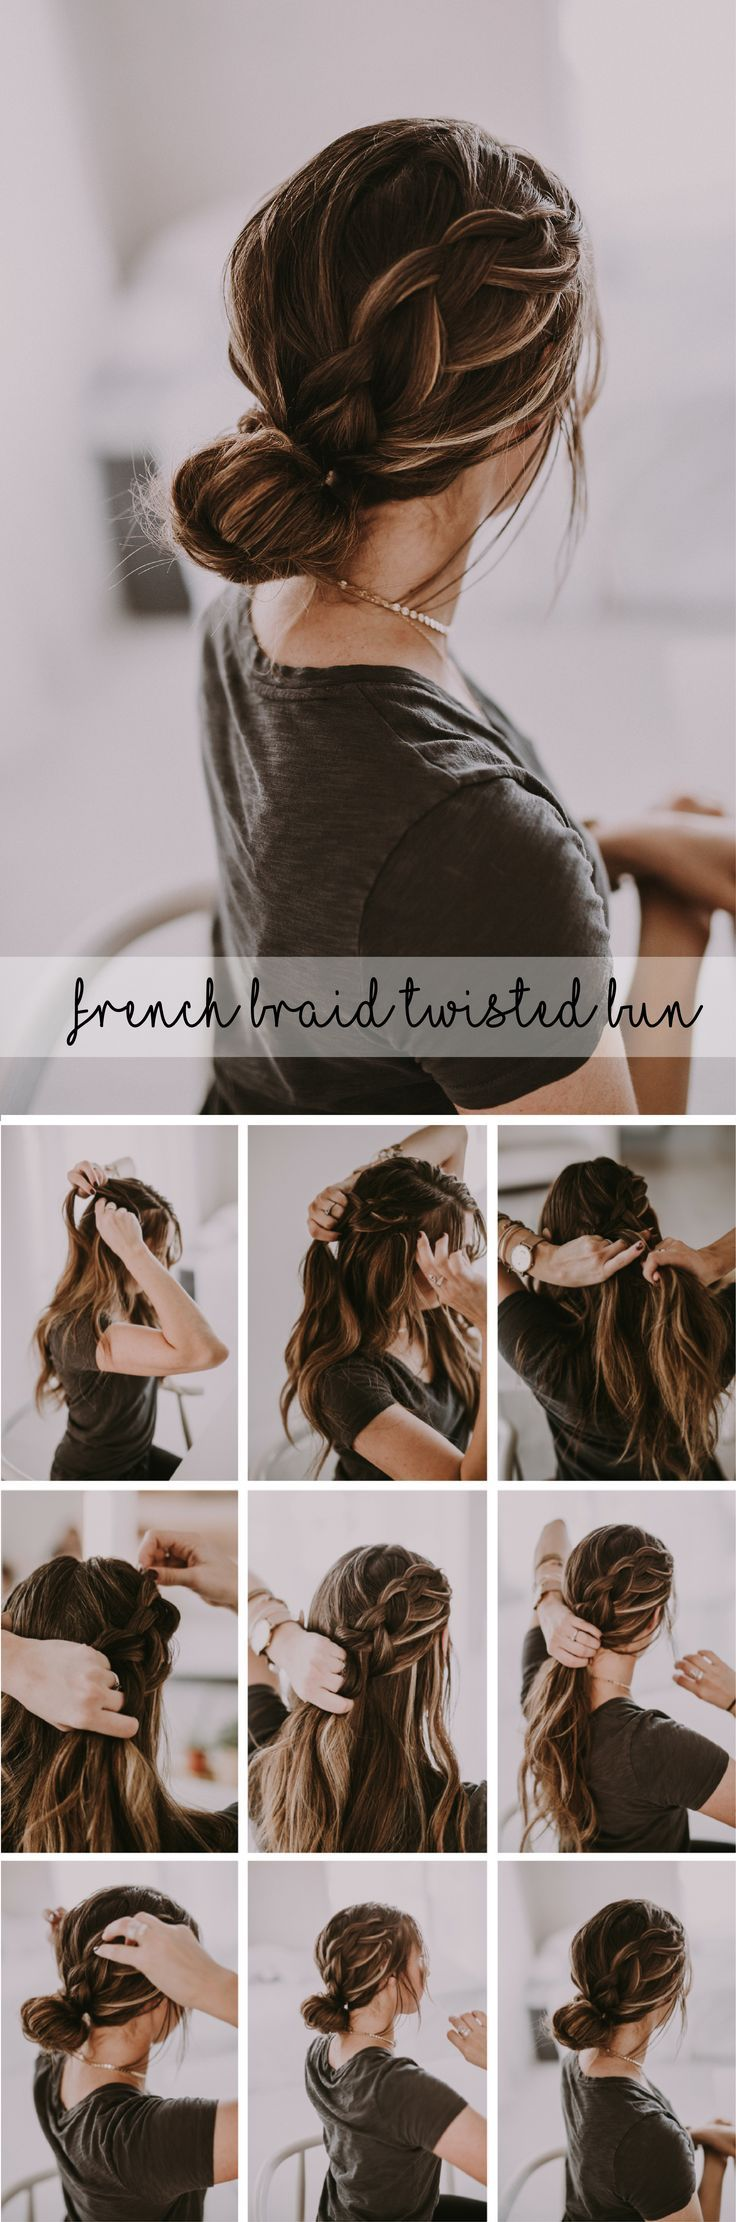 Beautiful french braid twisted bun up-do hairstyle. Perfect dressed up for holid...